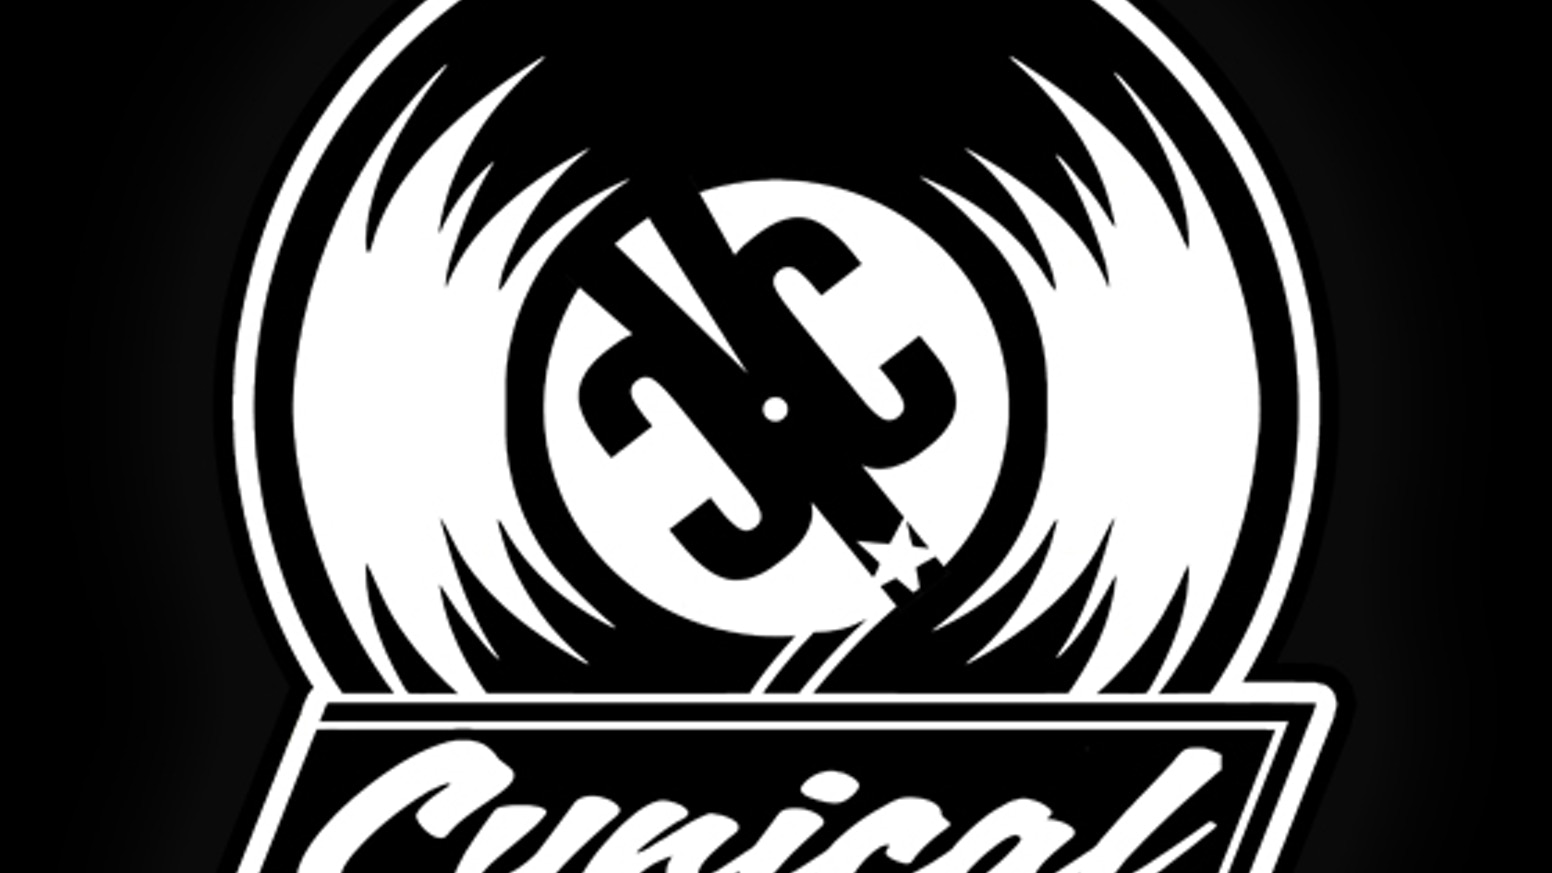 Cynical Clothing Inc By Will Schaule Kickstarter